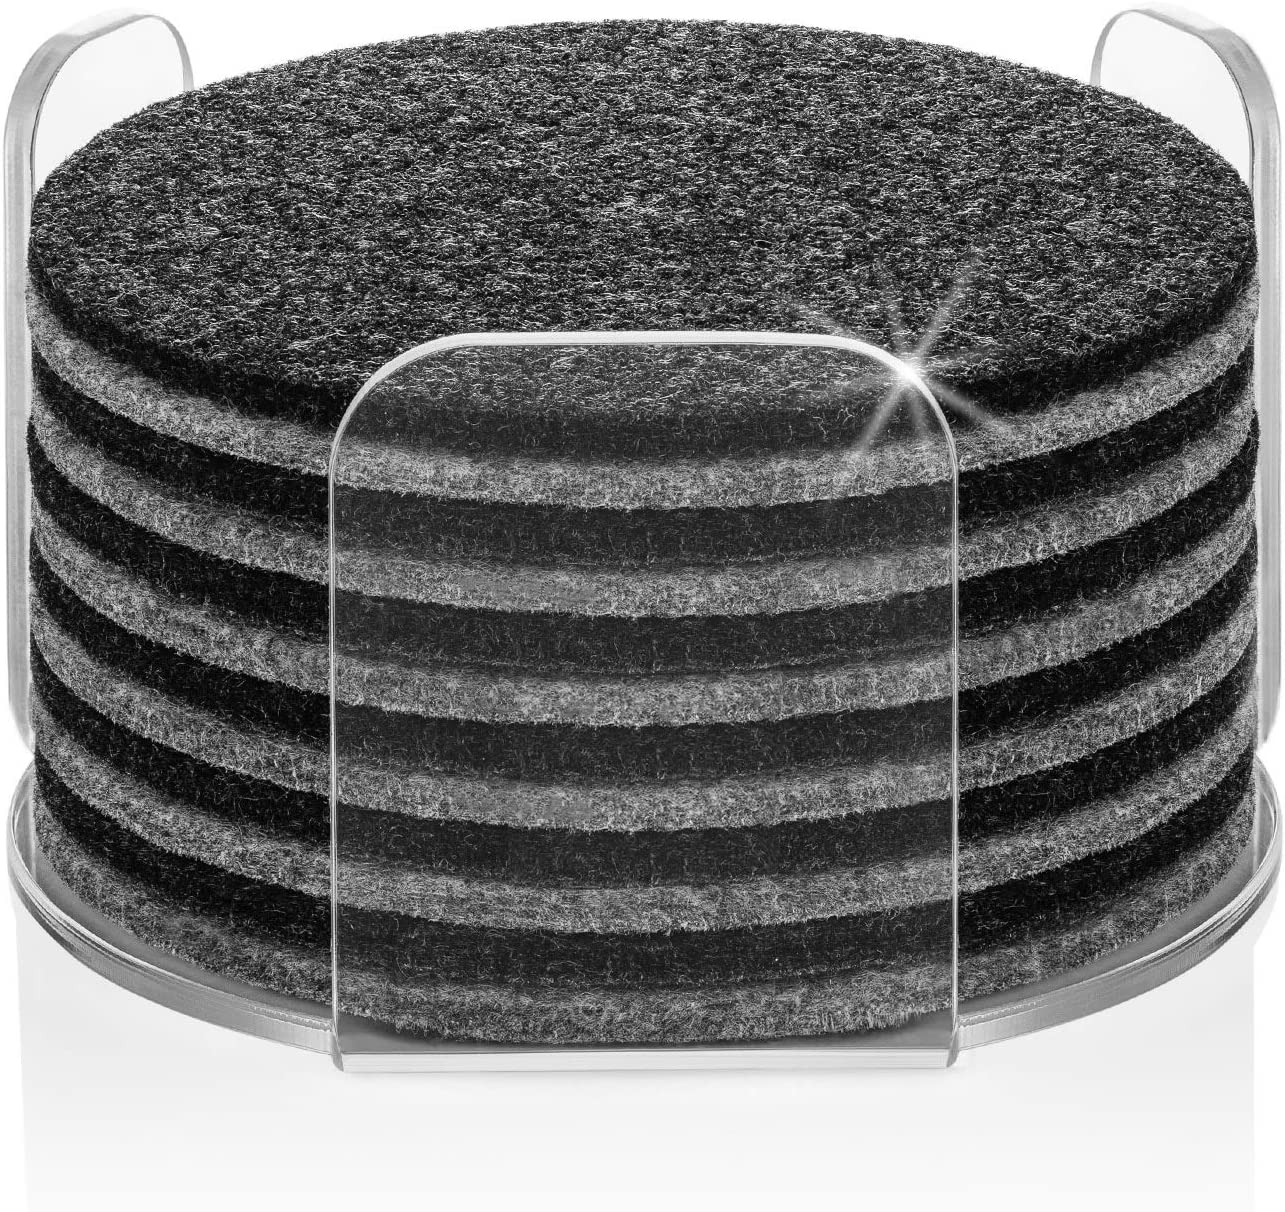 6 Absorbent Felt Coasters With Holder Funny Coasters For Drinks Set of 8 Perfect Housewarming Gift Idea 2 Car Coasters Premium Package Protects Furniture Hexagon, Charcoal Design Hexa